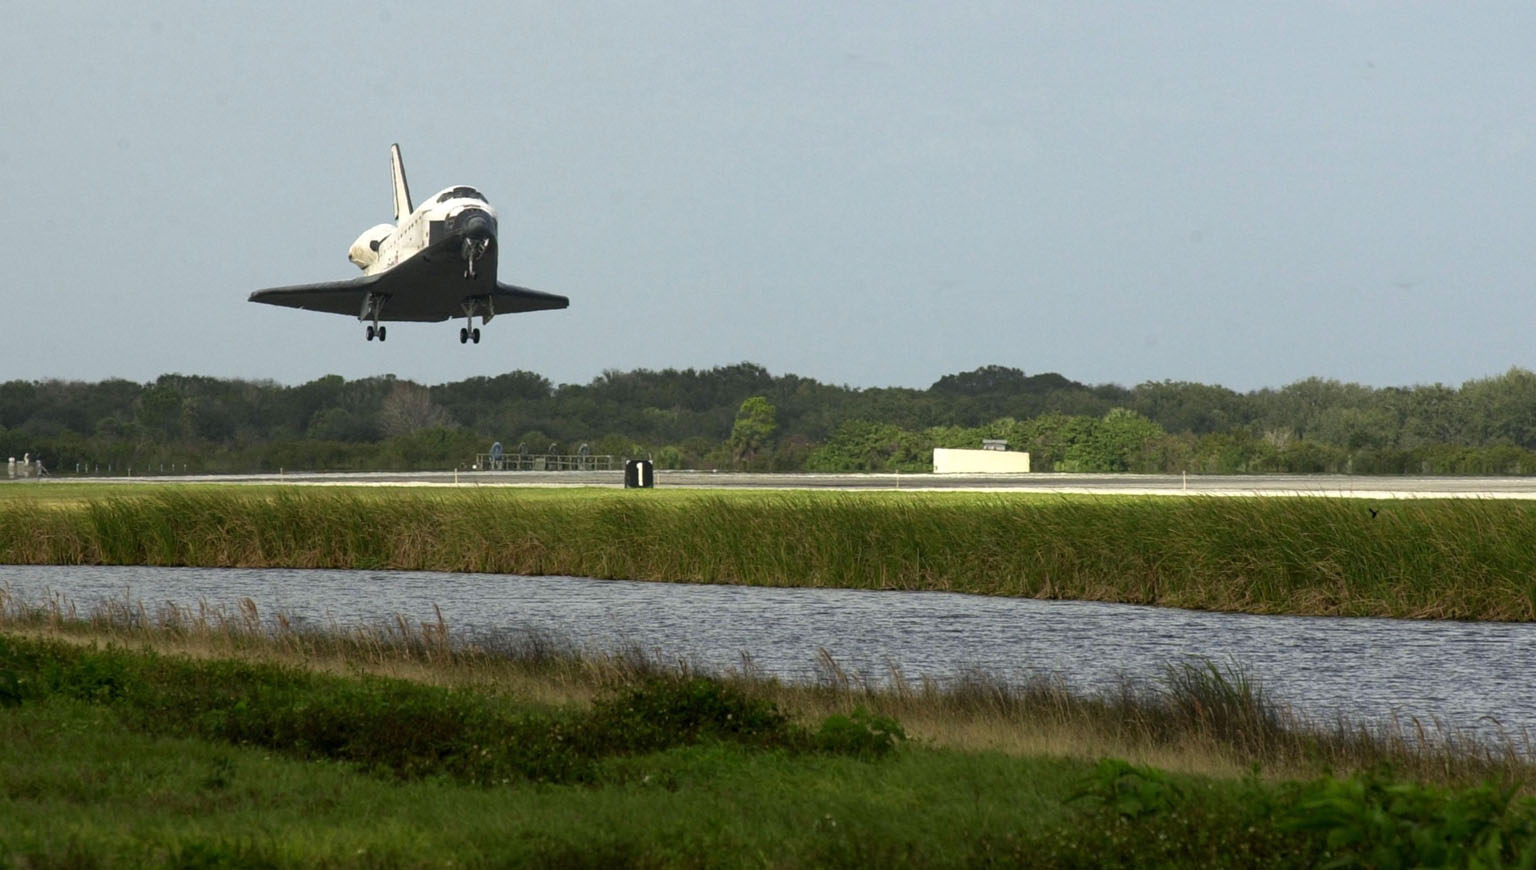 KENNEDY SPACE CENTER, FLA. -- Orbiter Endeavour glides toward touchdown on Runway 15 at the KSC Shuttle Landing Facility, completing mission STS-108. After a mission-elapsed time of 11 days, 19 hours and 35 minutes, the landing is the 57th at KSC in the history of the program. Main gear touchdown occurred at 12:55:10 p.m. EST (17:55:10 GMT), nose gear touchdown at 12:55:23 p.m. (17:55:23 GMT) , wheel stop at 12:56:13 p.m. (17:56:13 GMT). STS-108 was the 12th mission to the International Space Station. This mission was the 107th flight in the Shuttle program and the 17th flight for the orbiter. Endeavour carries both the mission crew and the Expedition 3 crew - Commander Frank Culbertson and cosmonauts Vladimir Dezhurov and Mikhail Tyurin - who are returning to Earth after 129 days in space on the Space Station